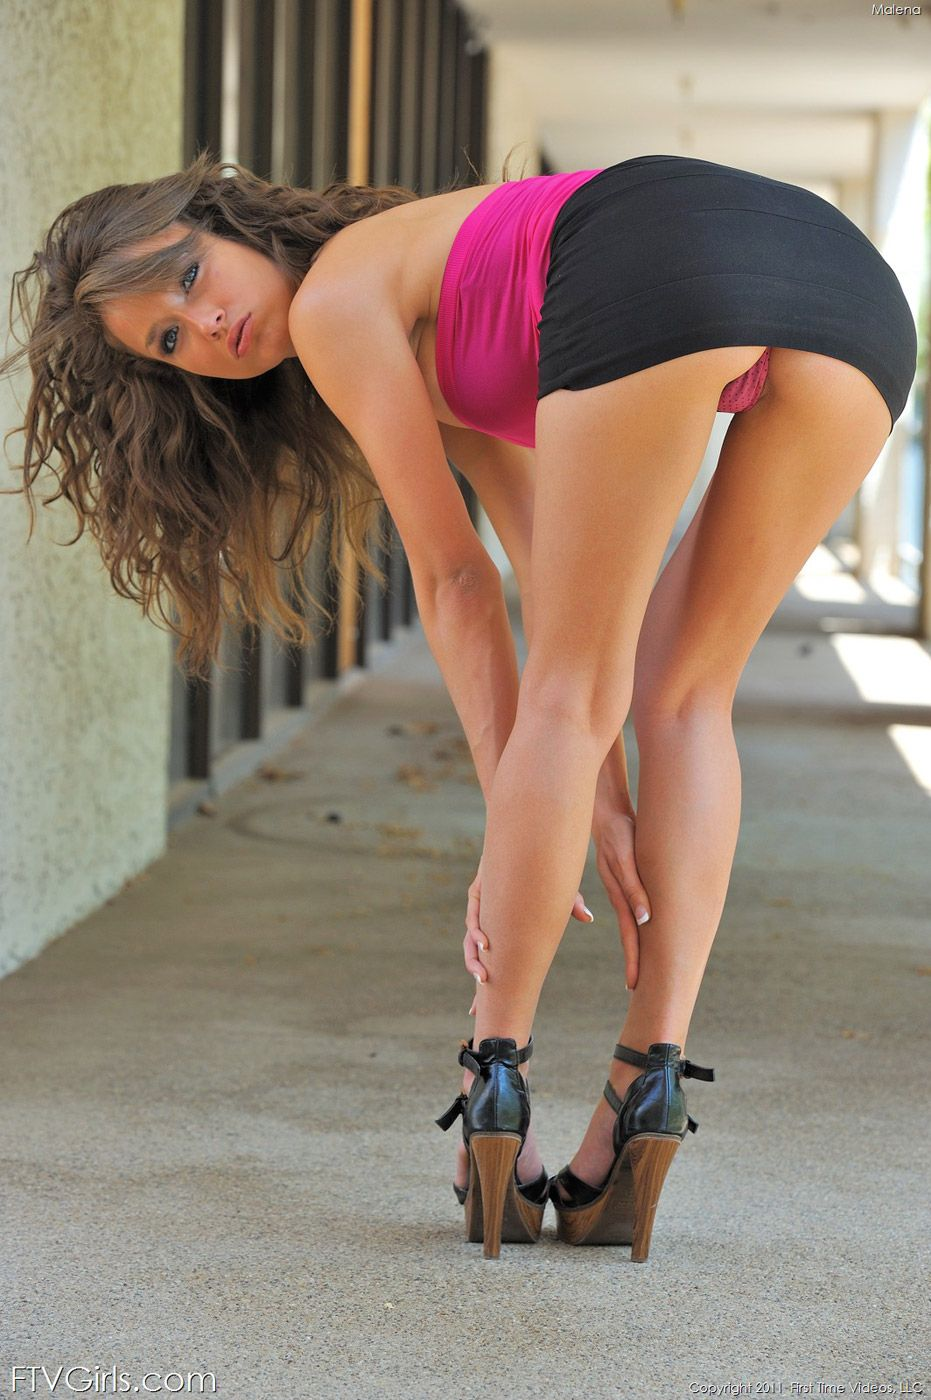 Ftv girl bent over think